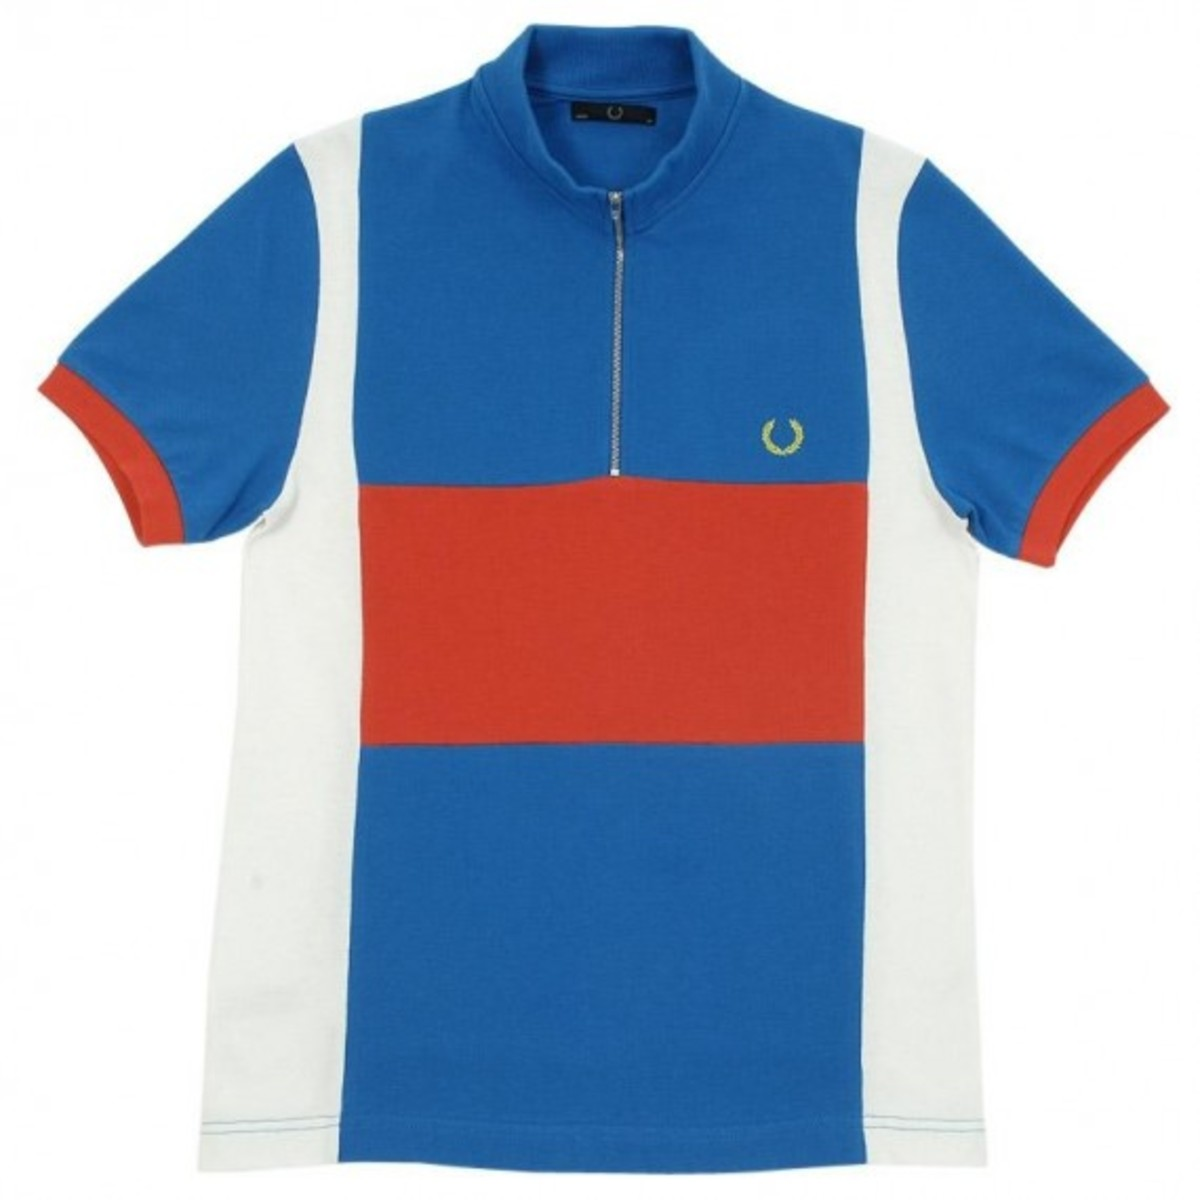 fred-perry-laurel-wreath-blank-canvas-cycling-24